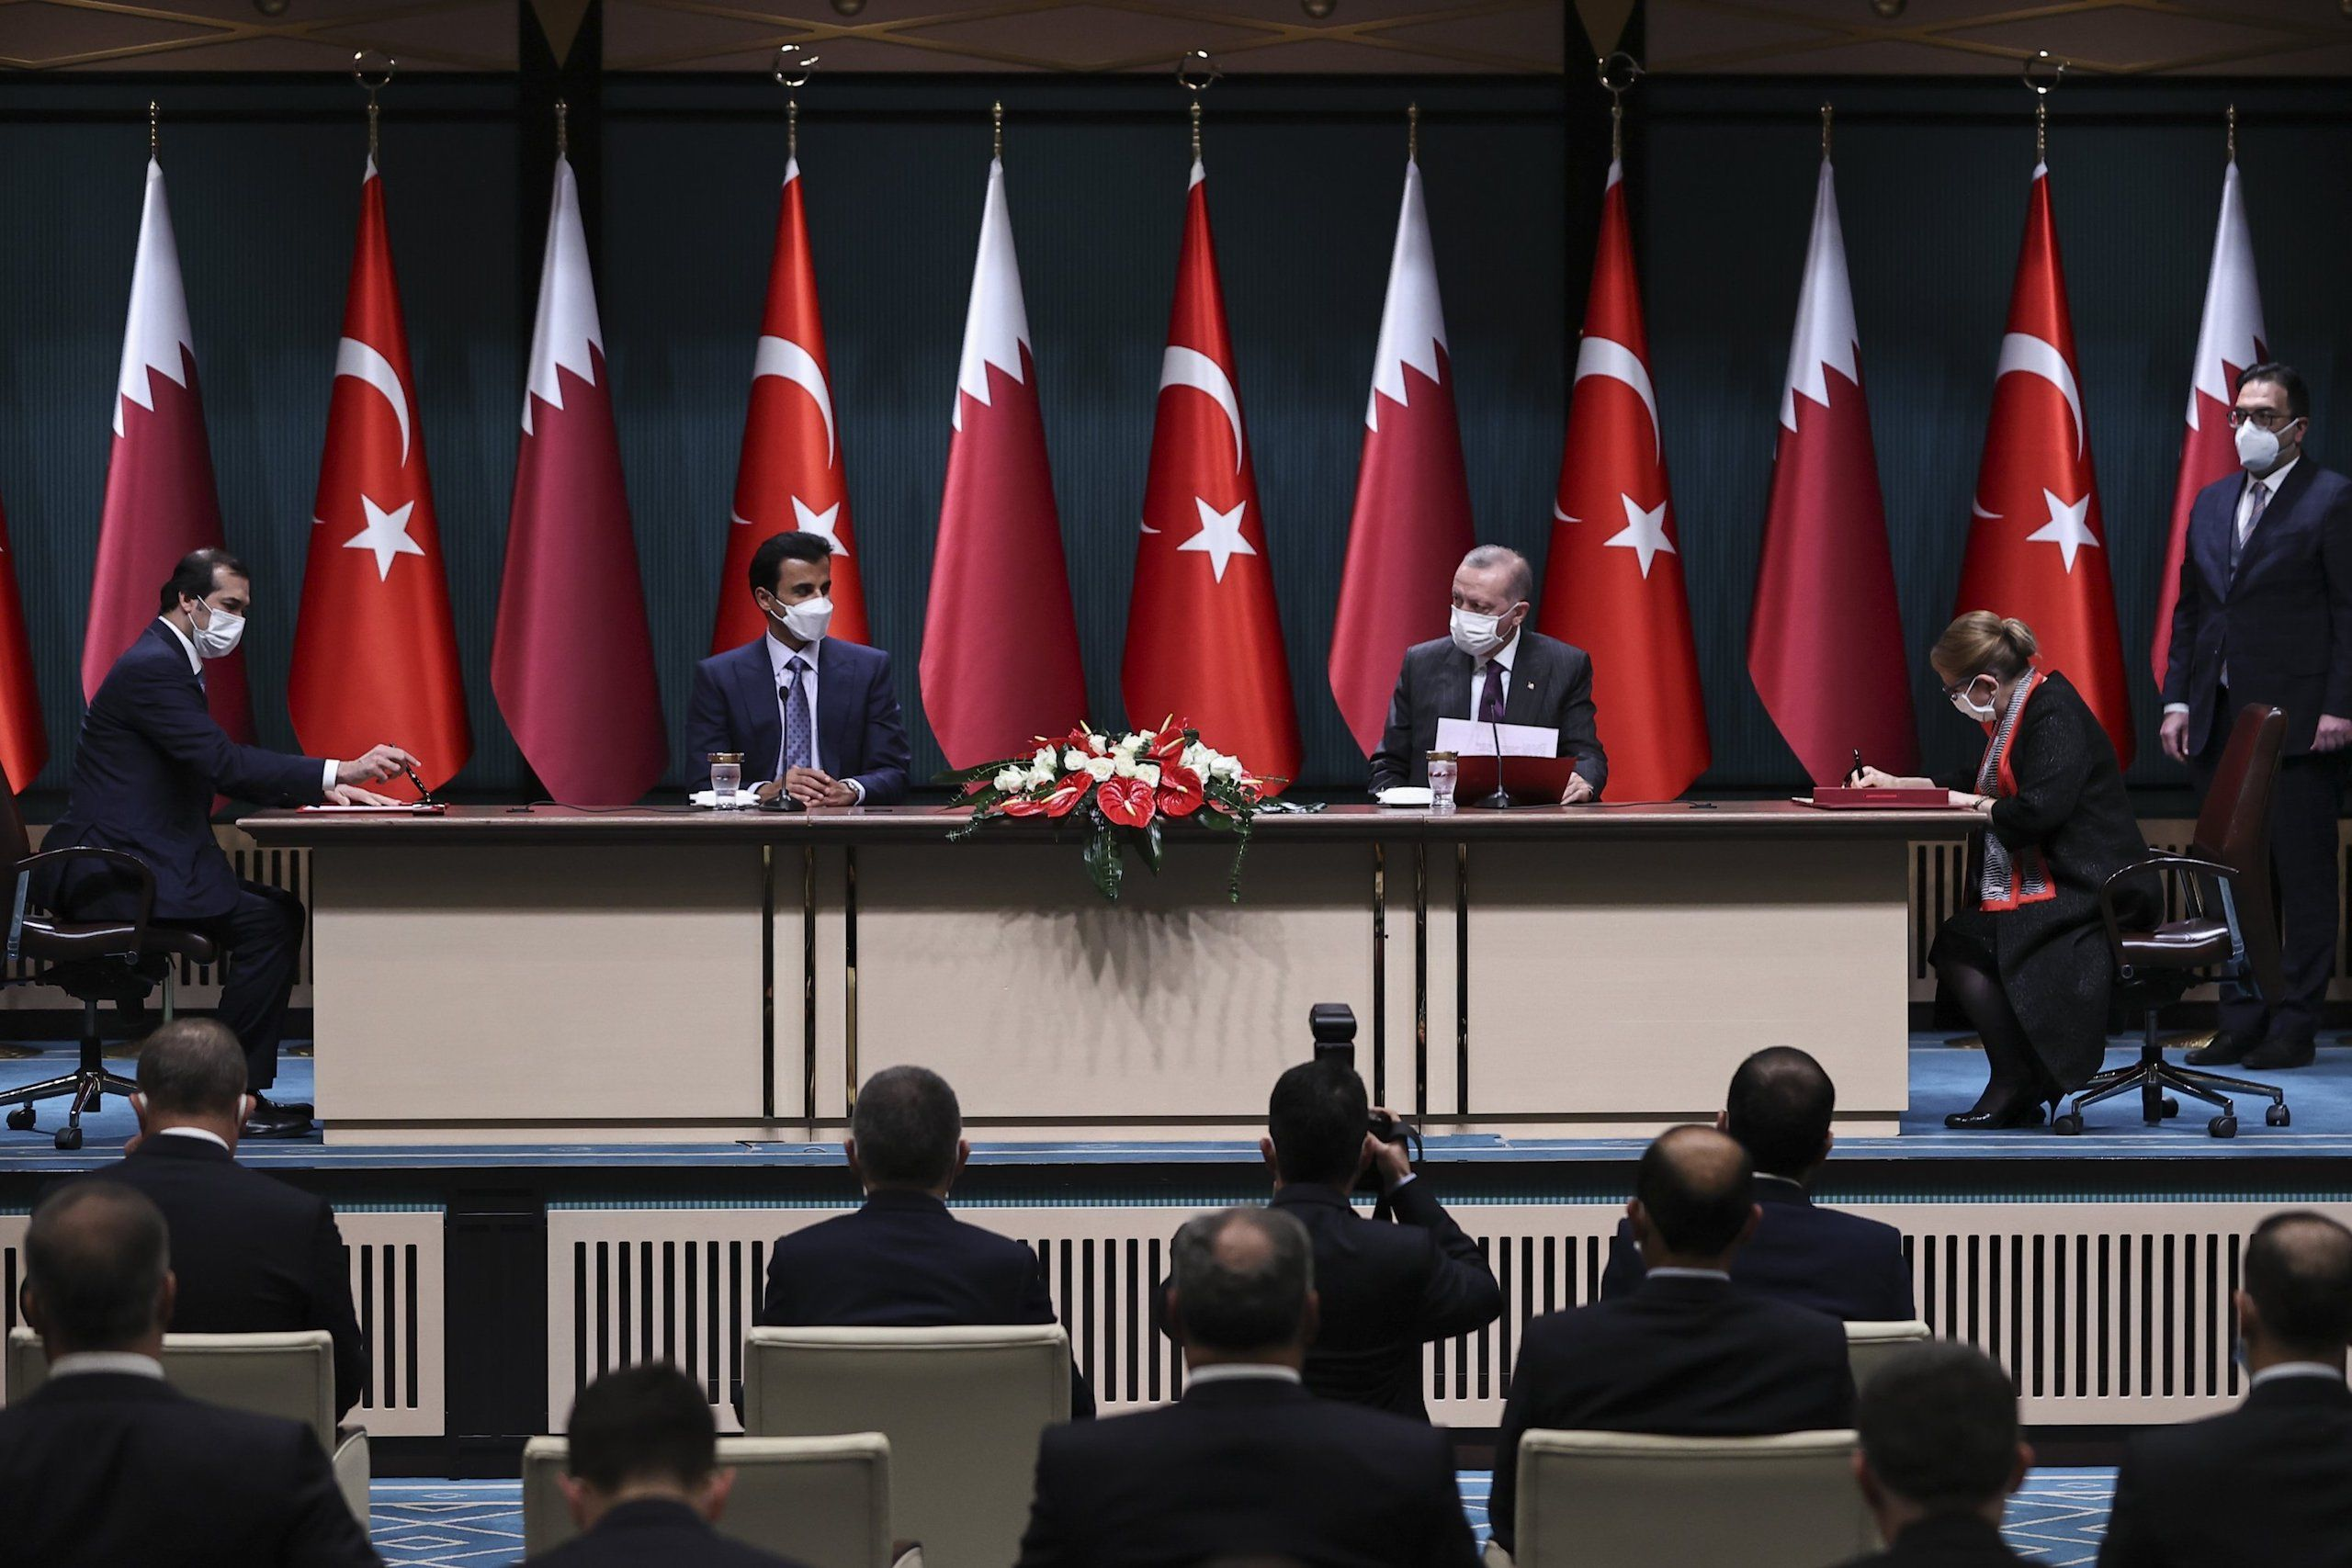 Members from Turkish and Qatari government at a press conference, signing trade documents in front of country flags